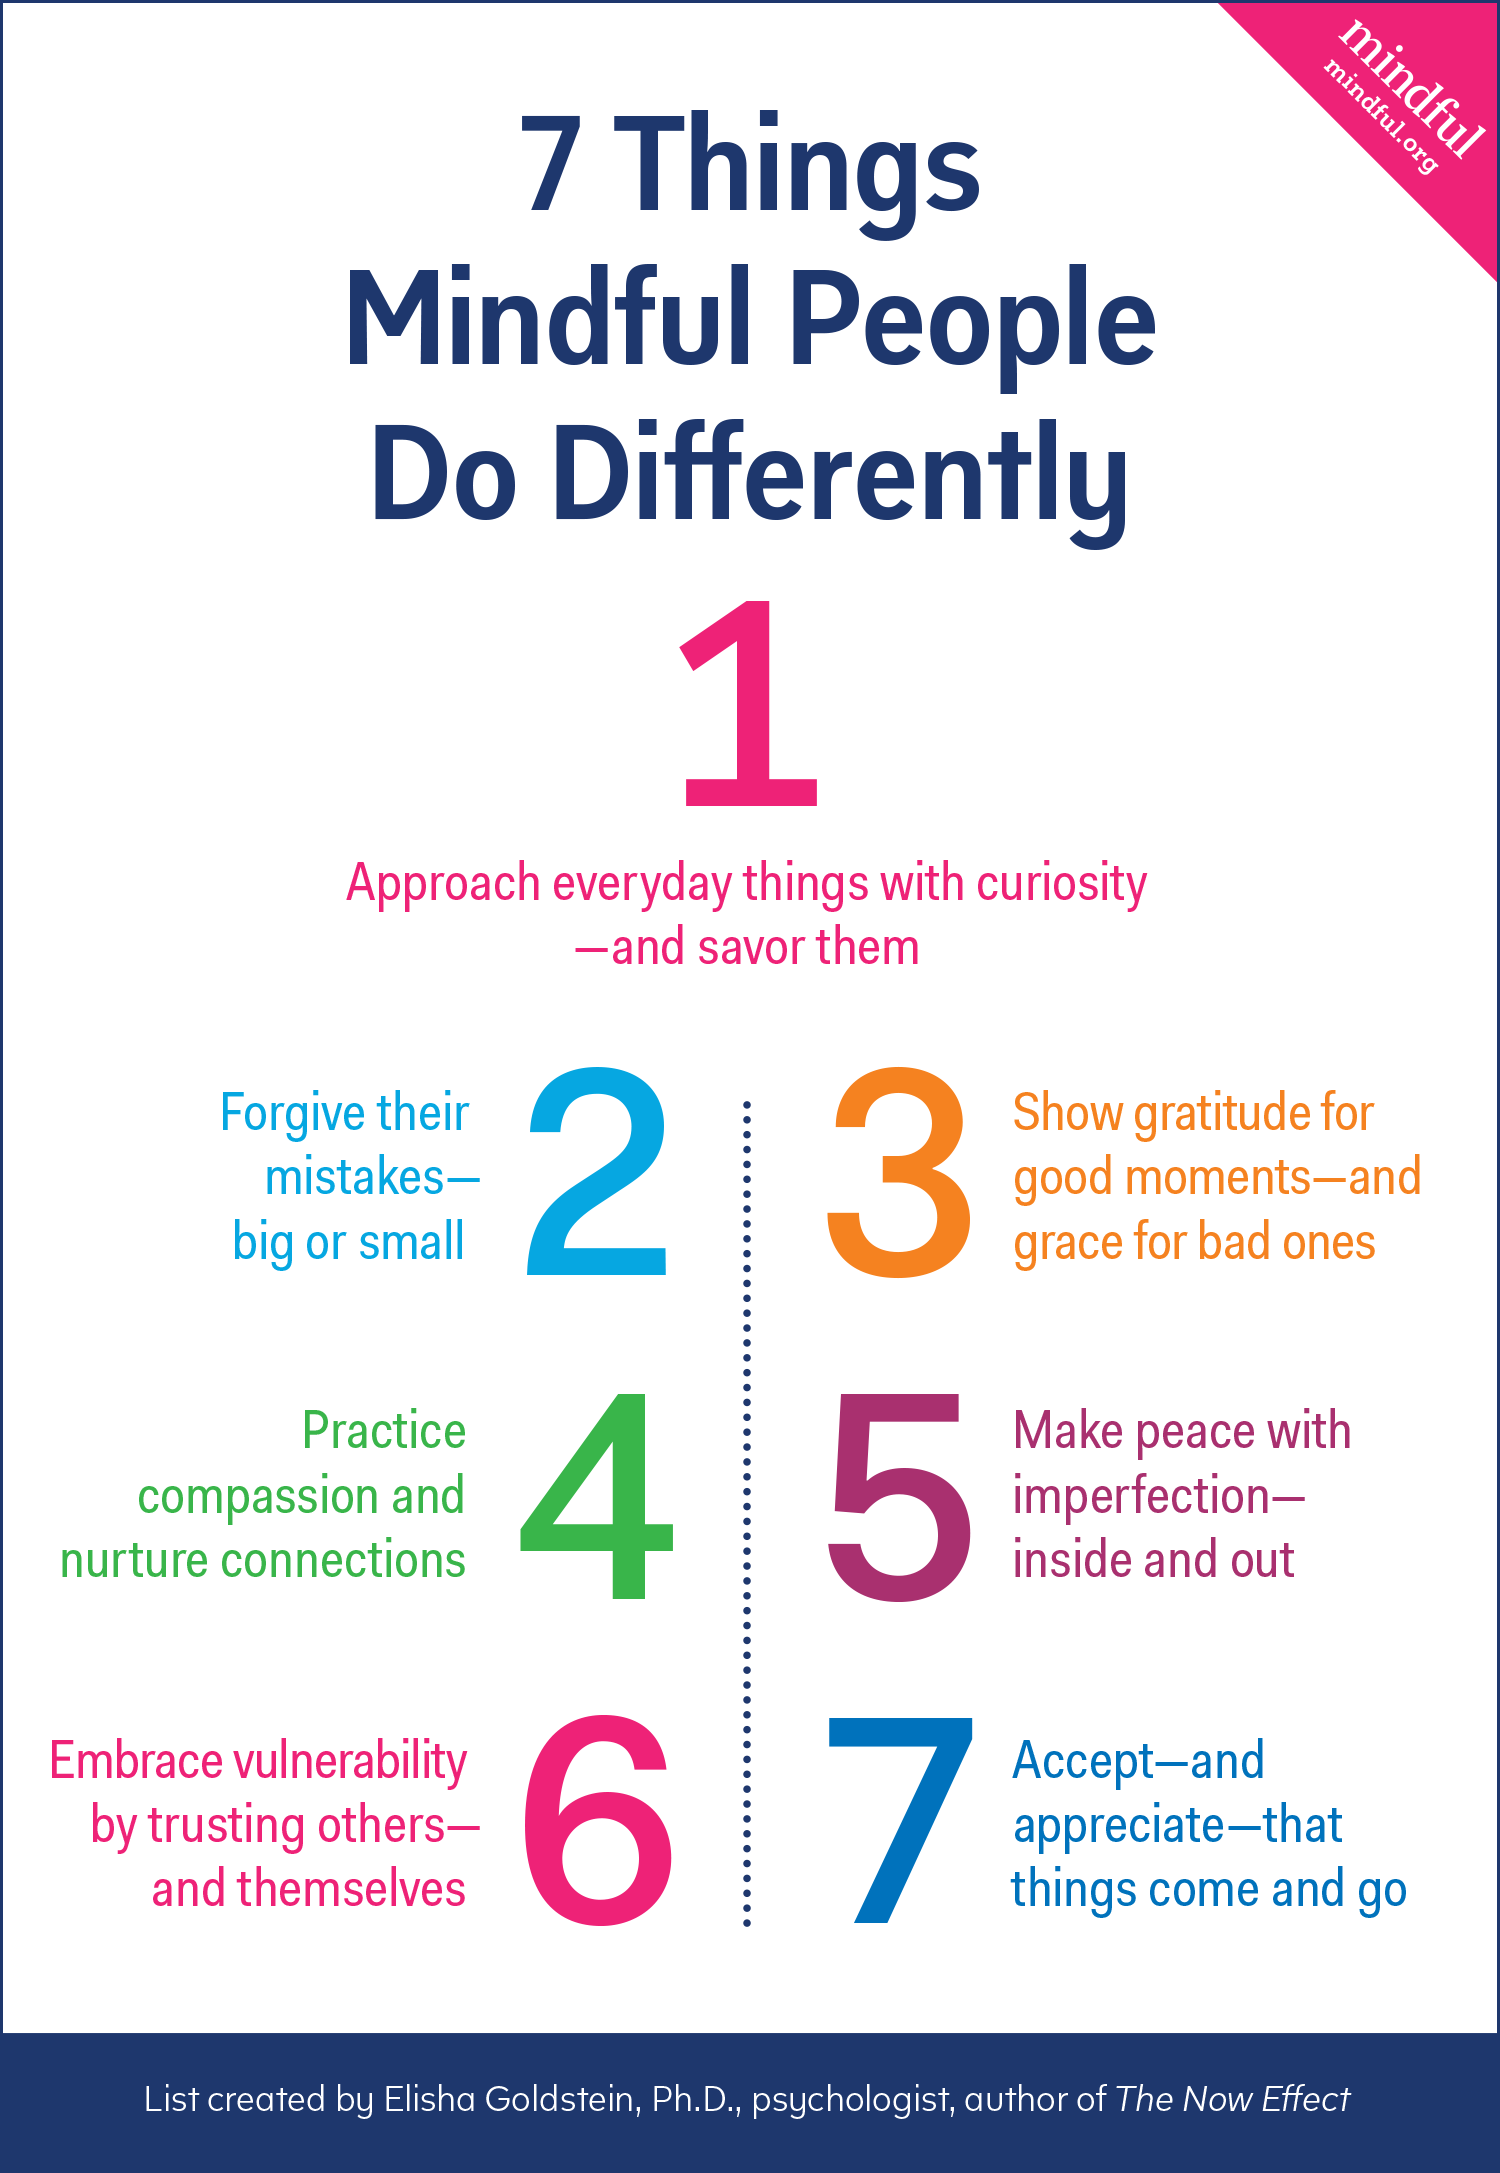 7-Things-Mindful-People-Do-REV